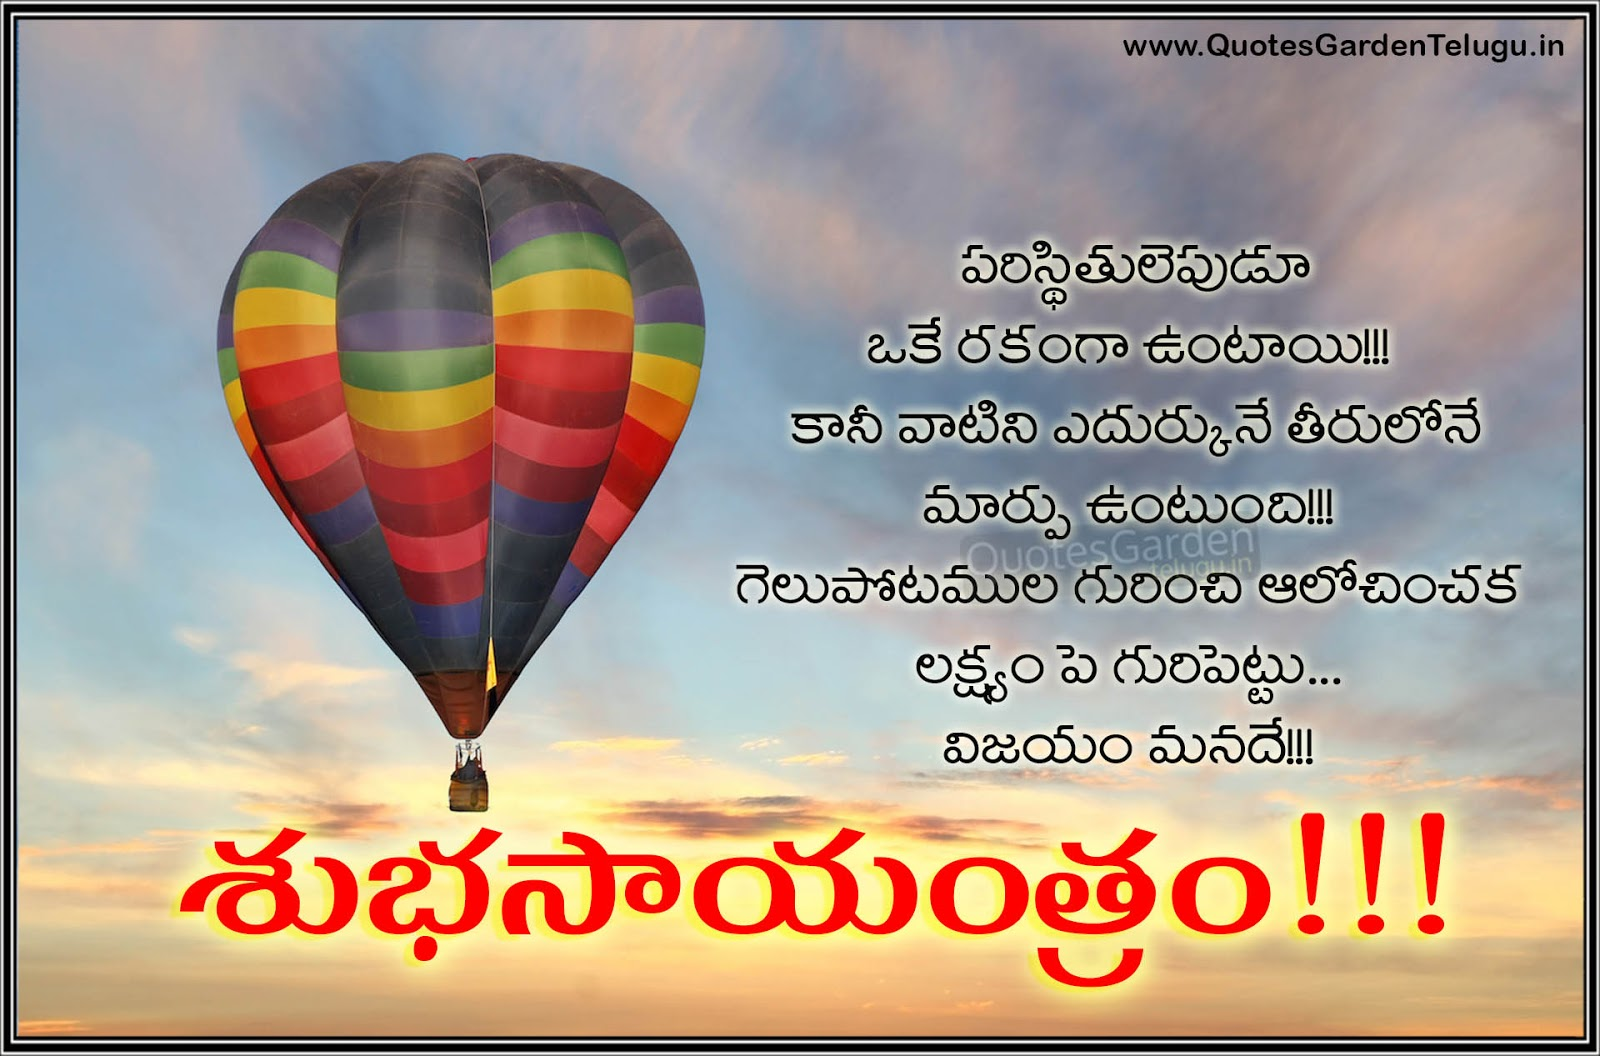 Beautiful Heart Touching Quotes Wallpapers Best Telugu Good Evening Quotes 1711 Quotes Garden